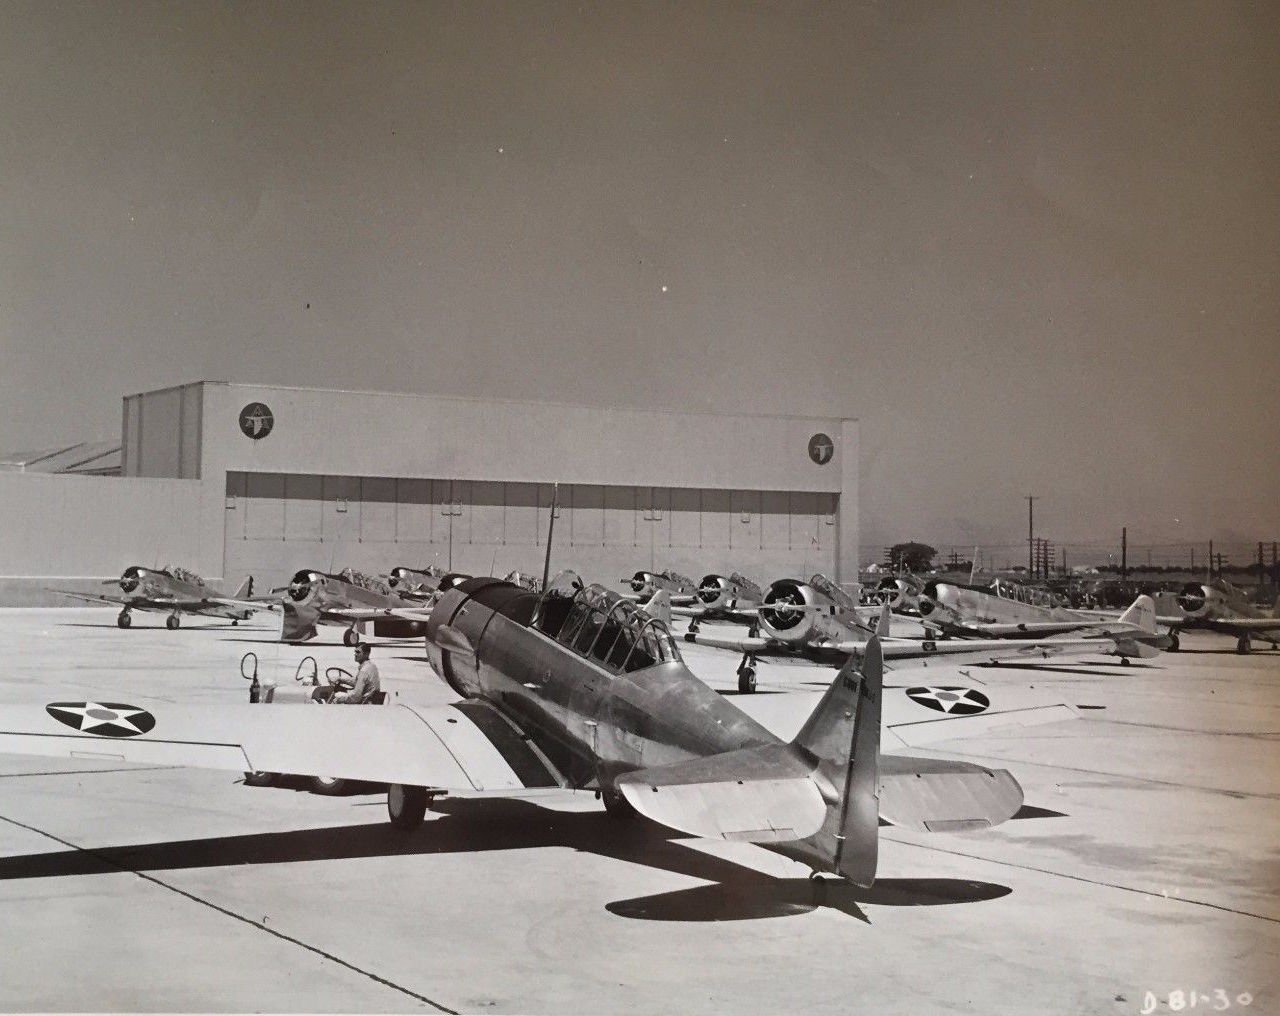 AT-6 Texans fresh off the assembly line, are seen here lined up for delivery in front of the North American Plant in Dallas. The aircraft closest to the camera is going to the Navy as an SNJ-3. (Image from the CAF Collection)